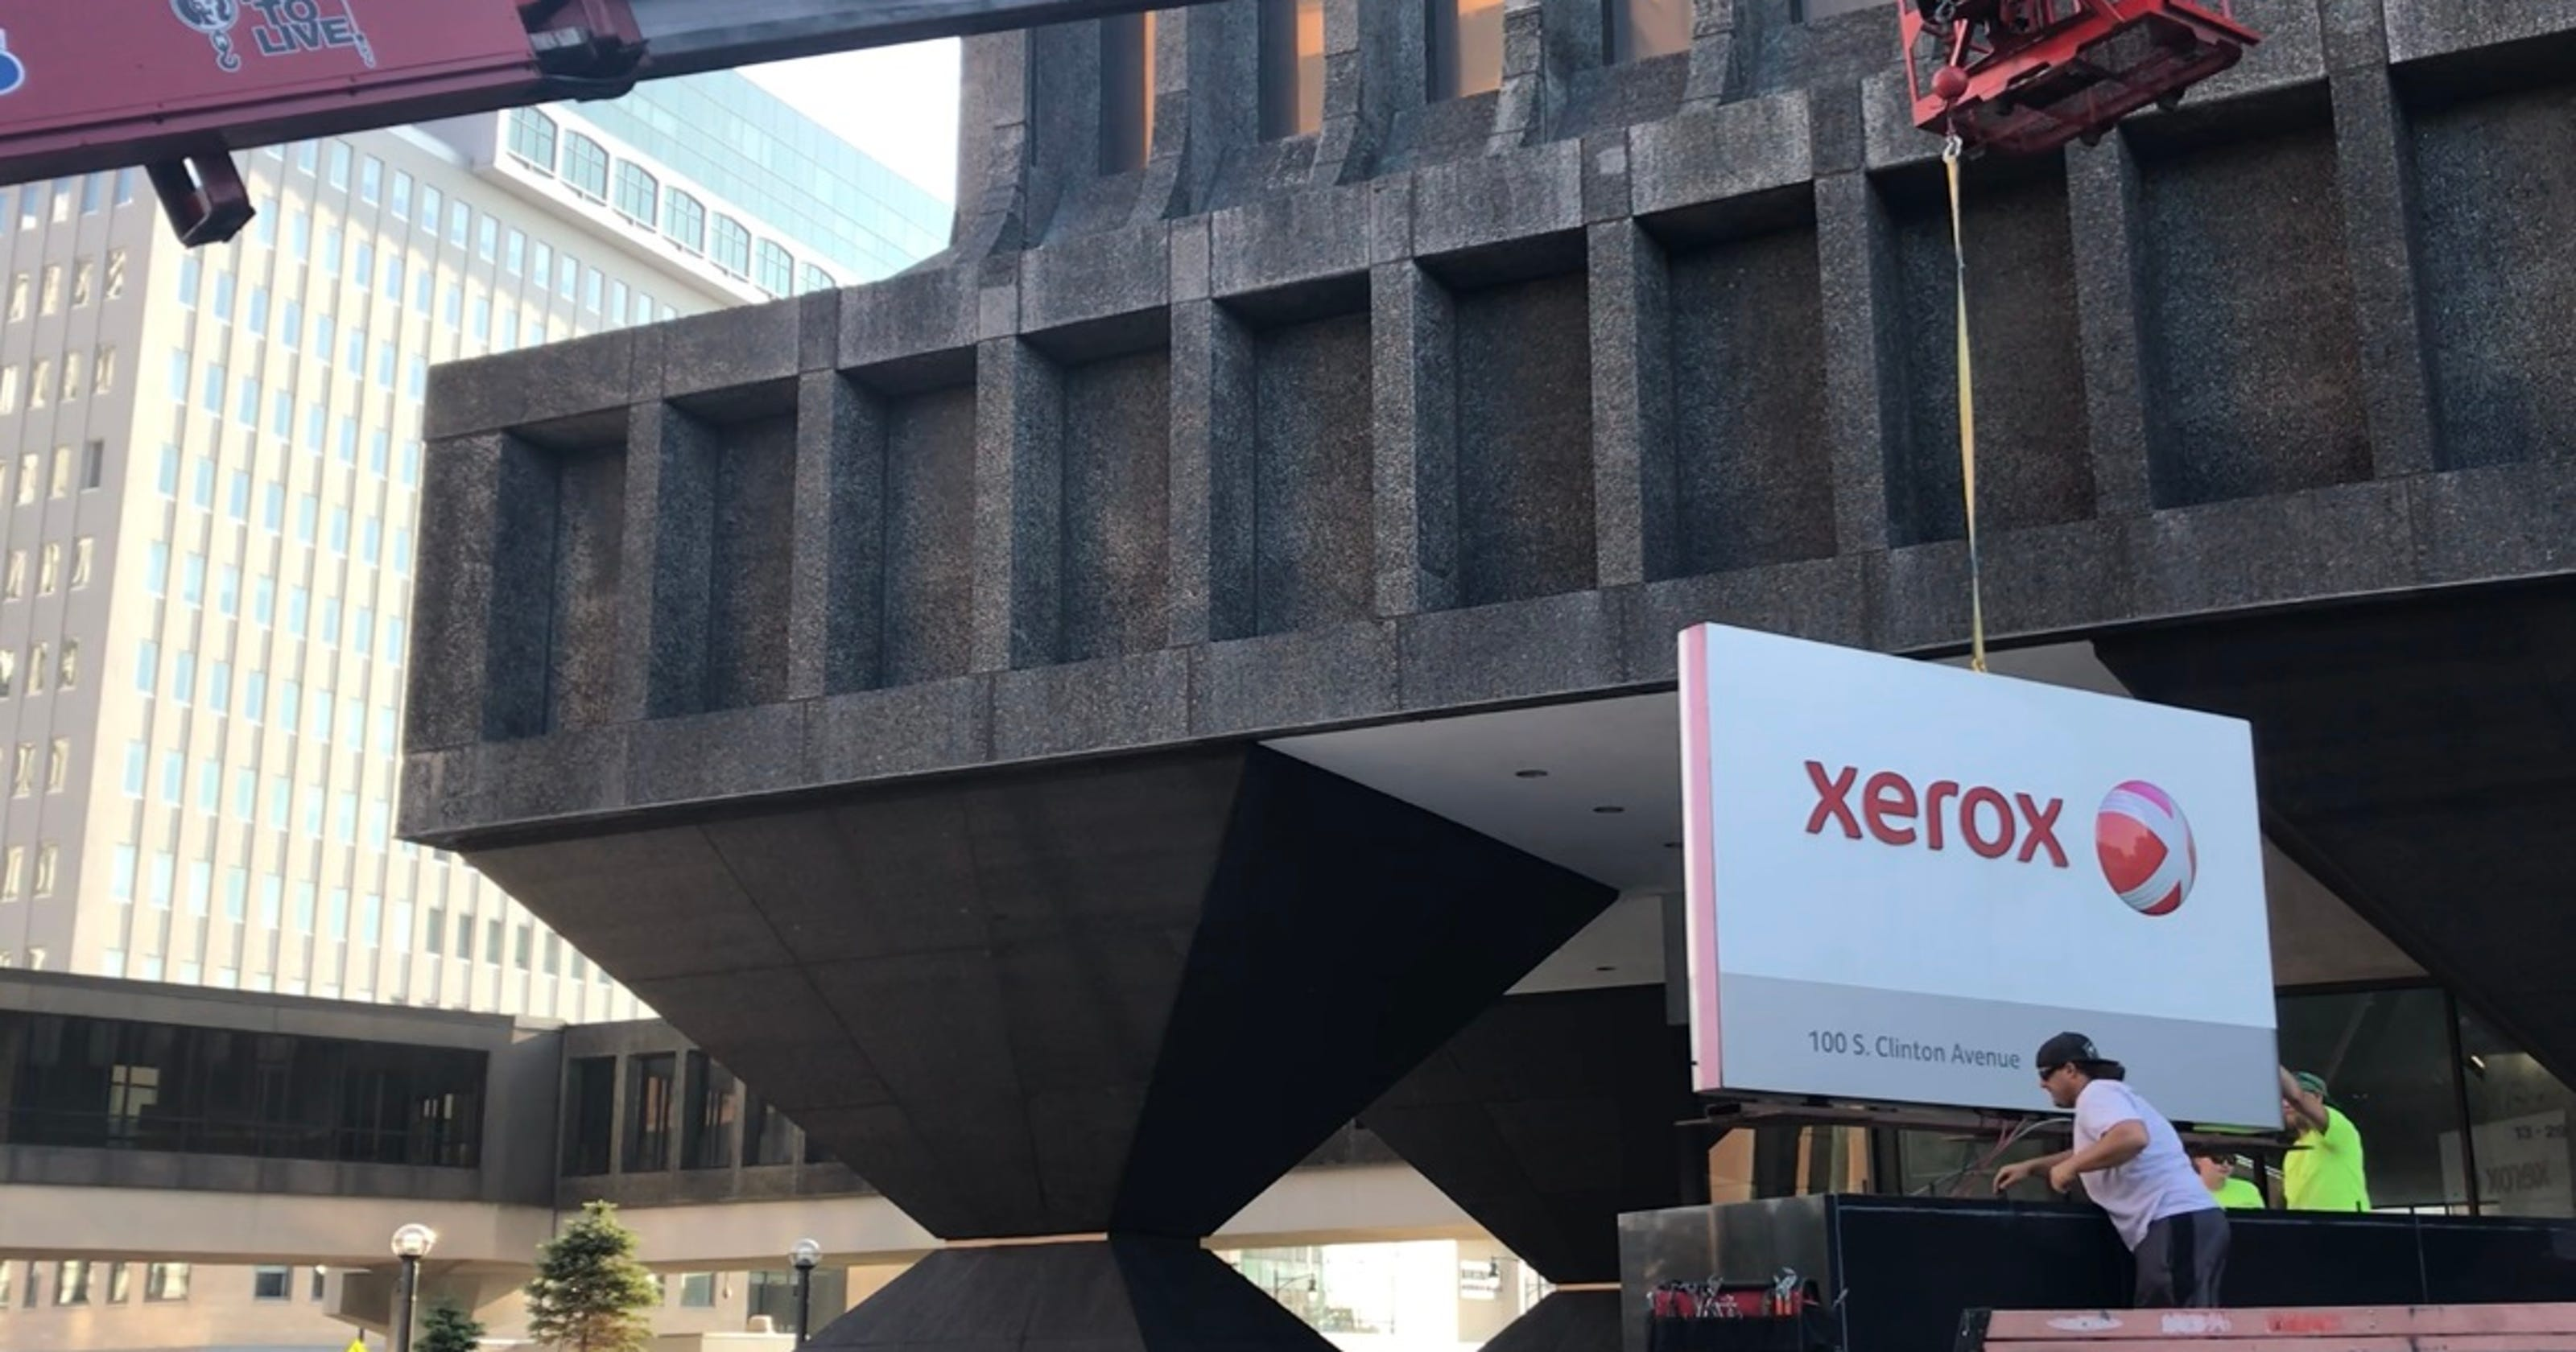 Xerox cuts more jobs after 900 shed from global workforce